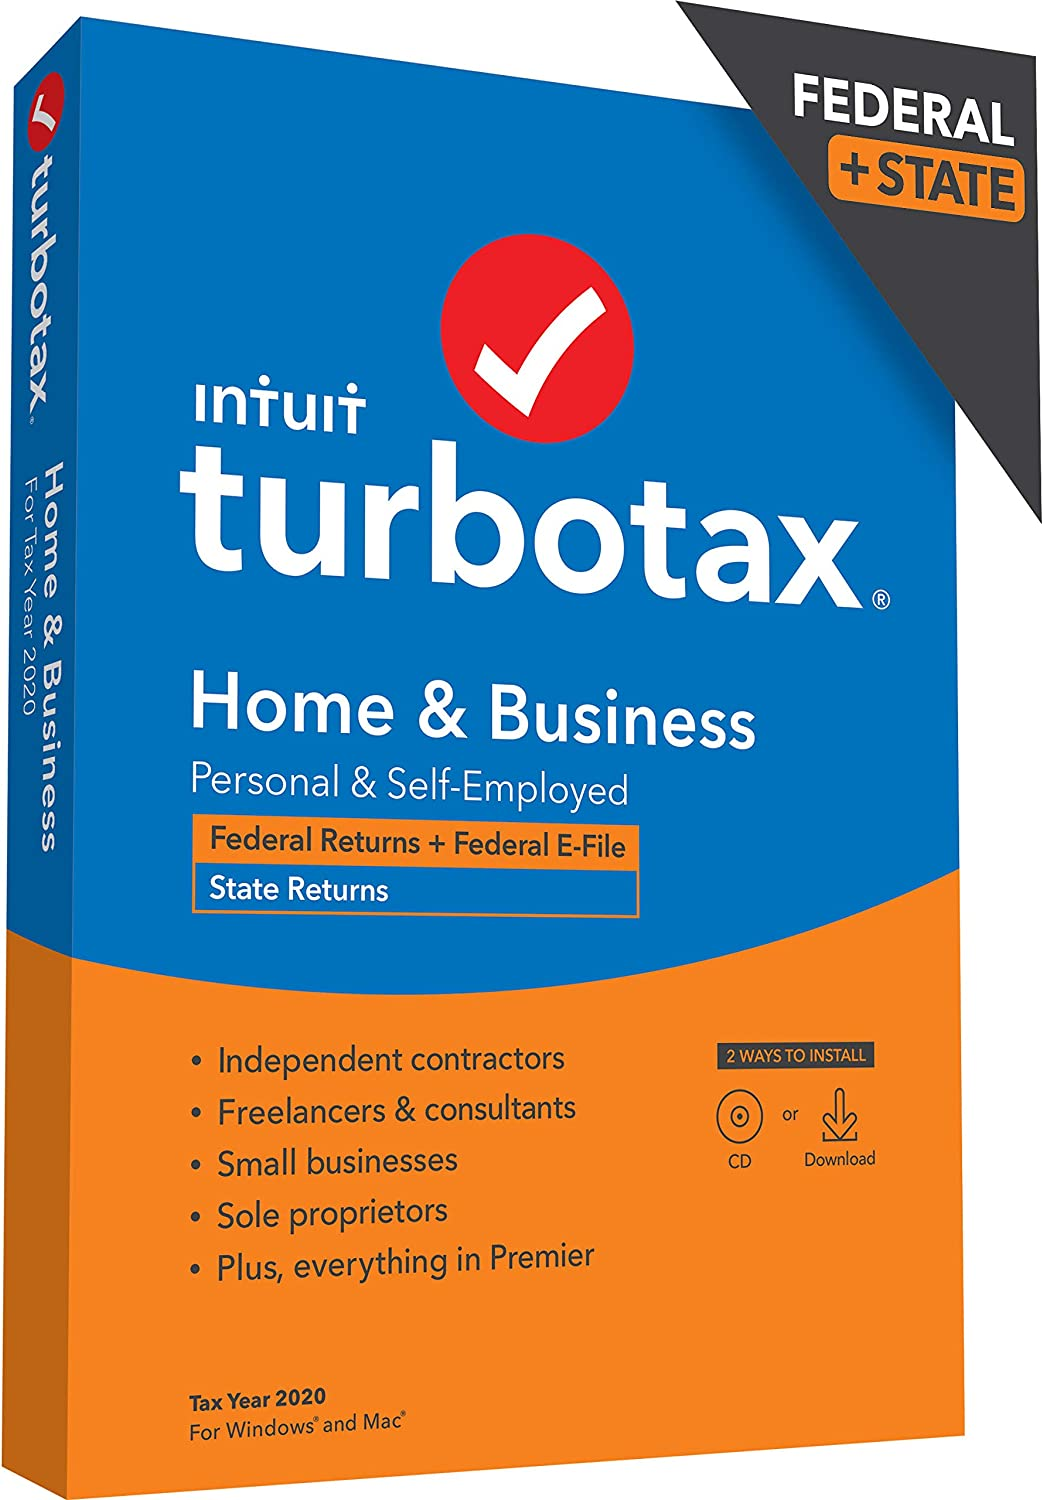 TurboTax Home & Business Discount Coupon Code